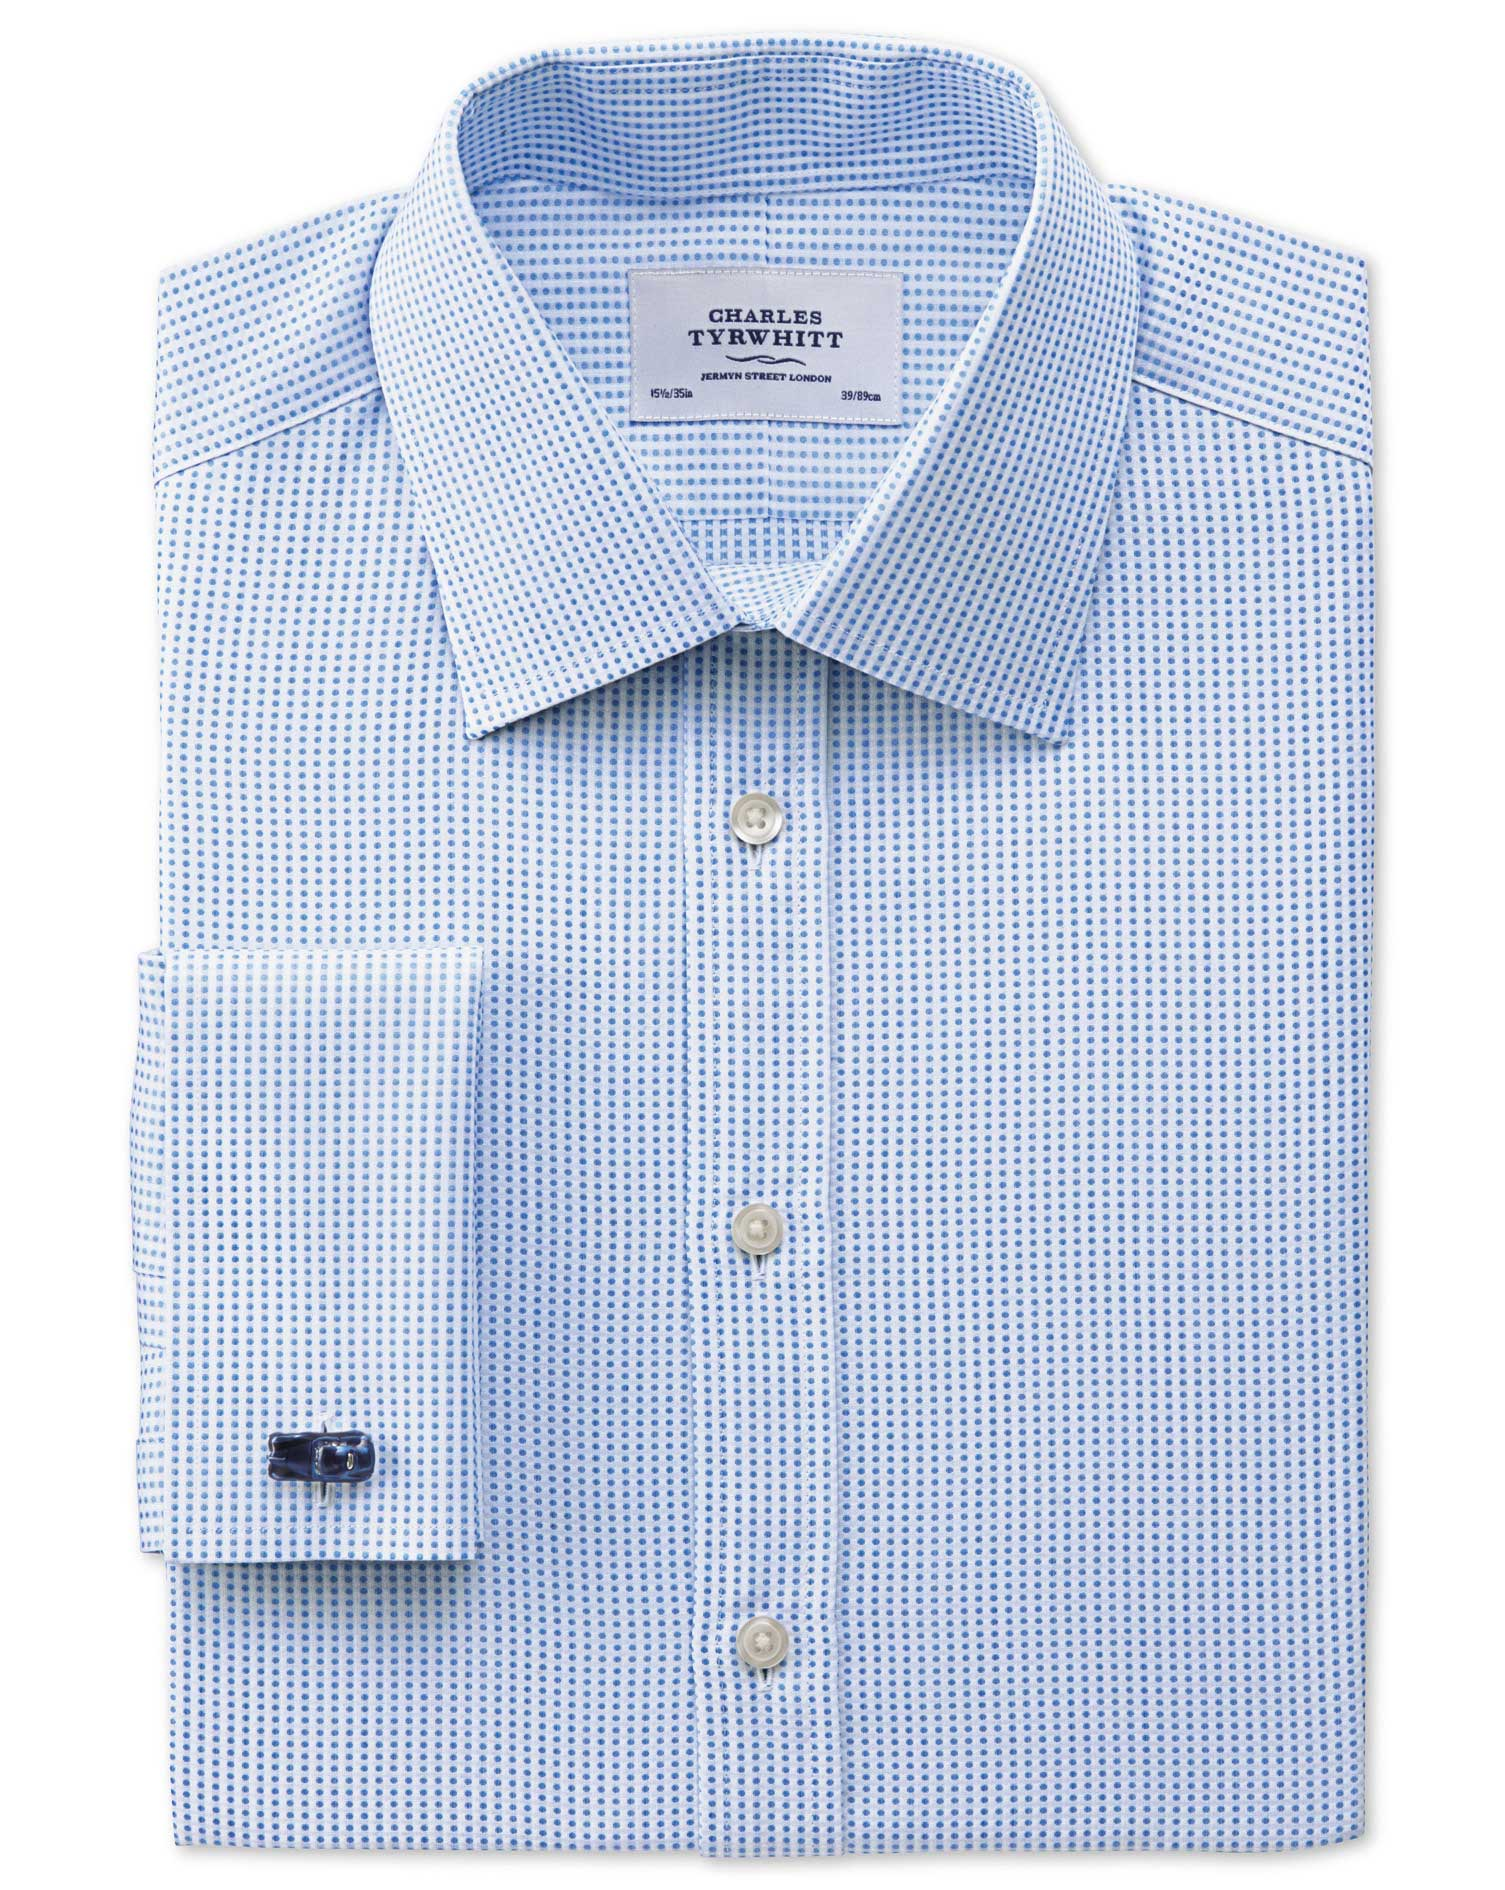 Extra Slim Fit Pima Cotton Double-Faced Sky Blue Formal Shirt Double Cuff Size 16/38 by Charles Tyrw